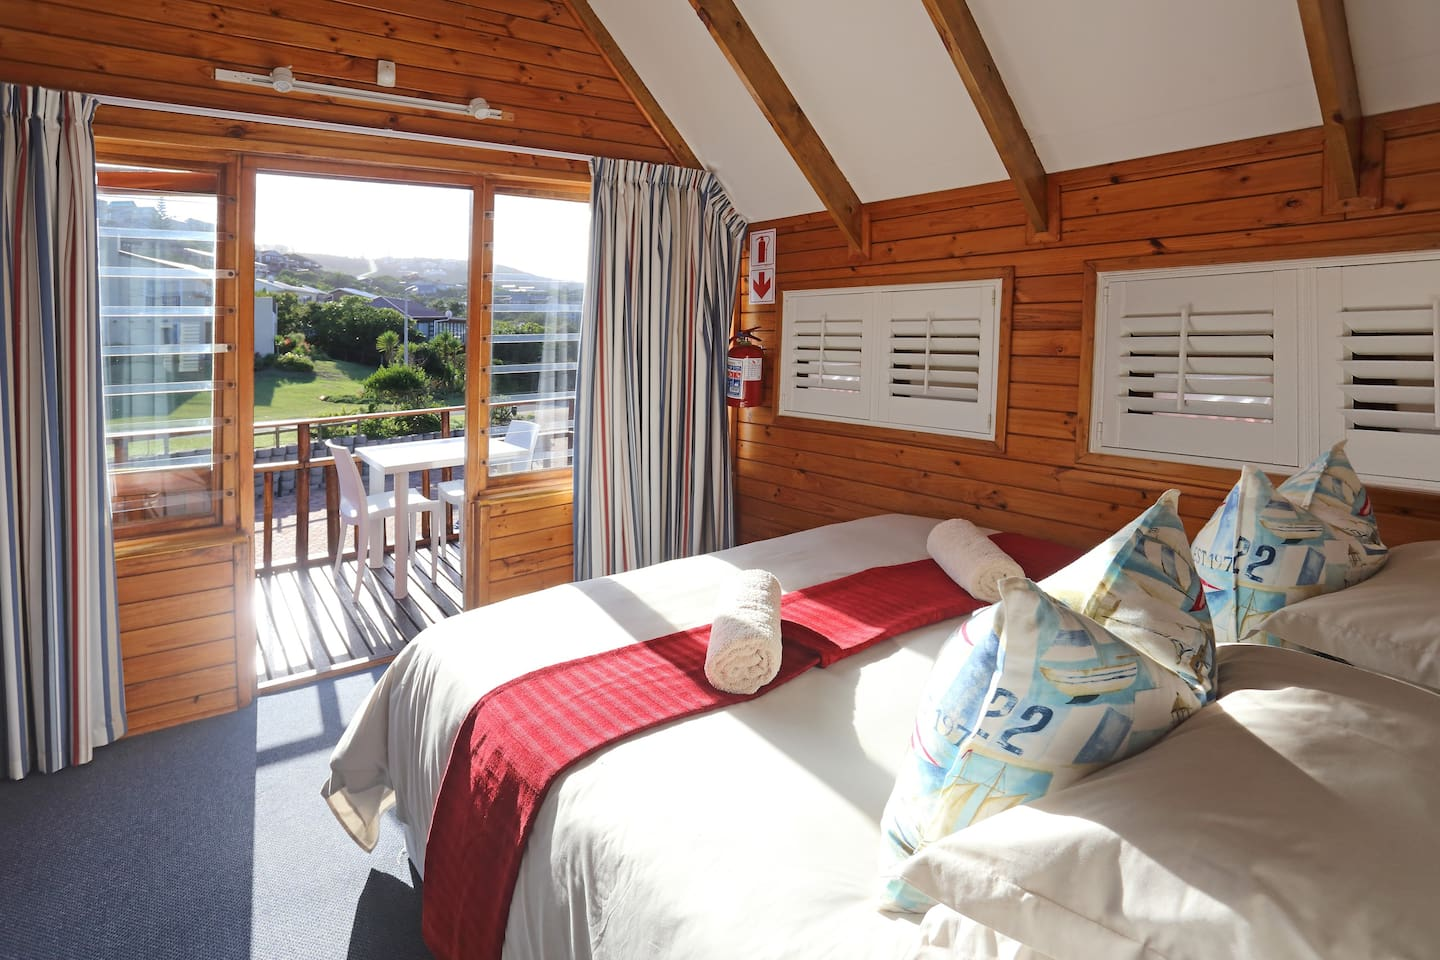 Double bedroom without a sea view.  This cabin face towards the town and not towards the ocean.